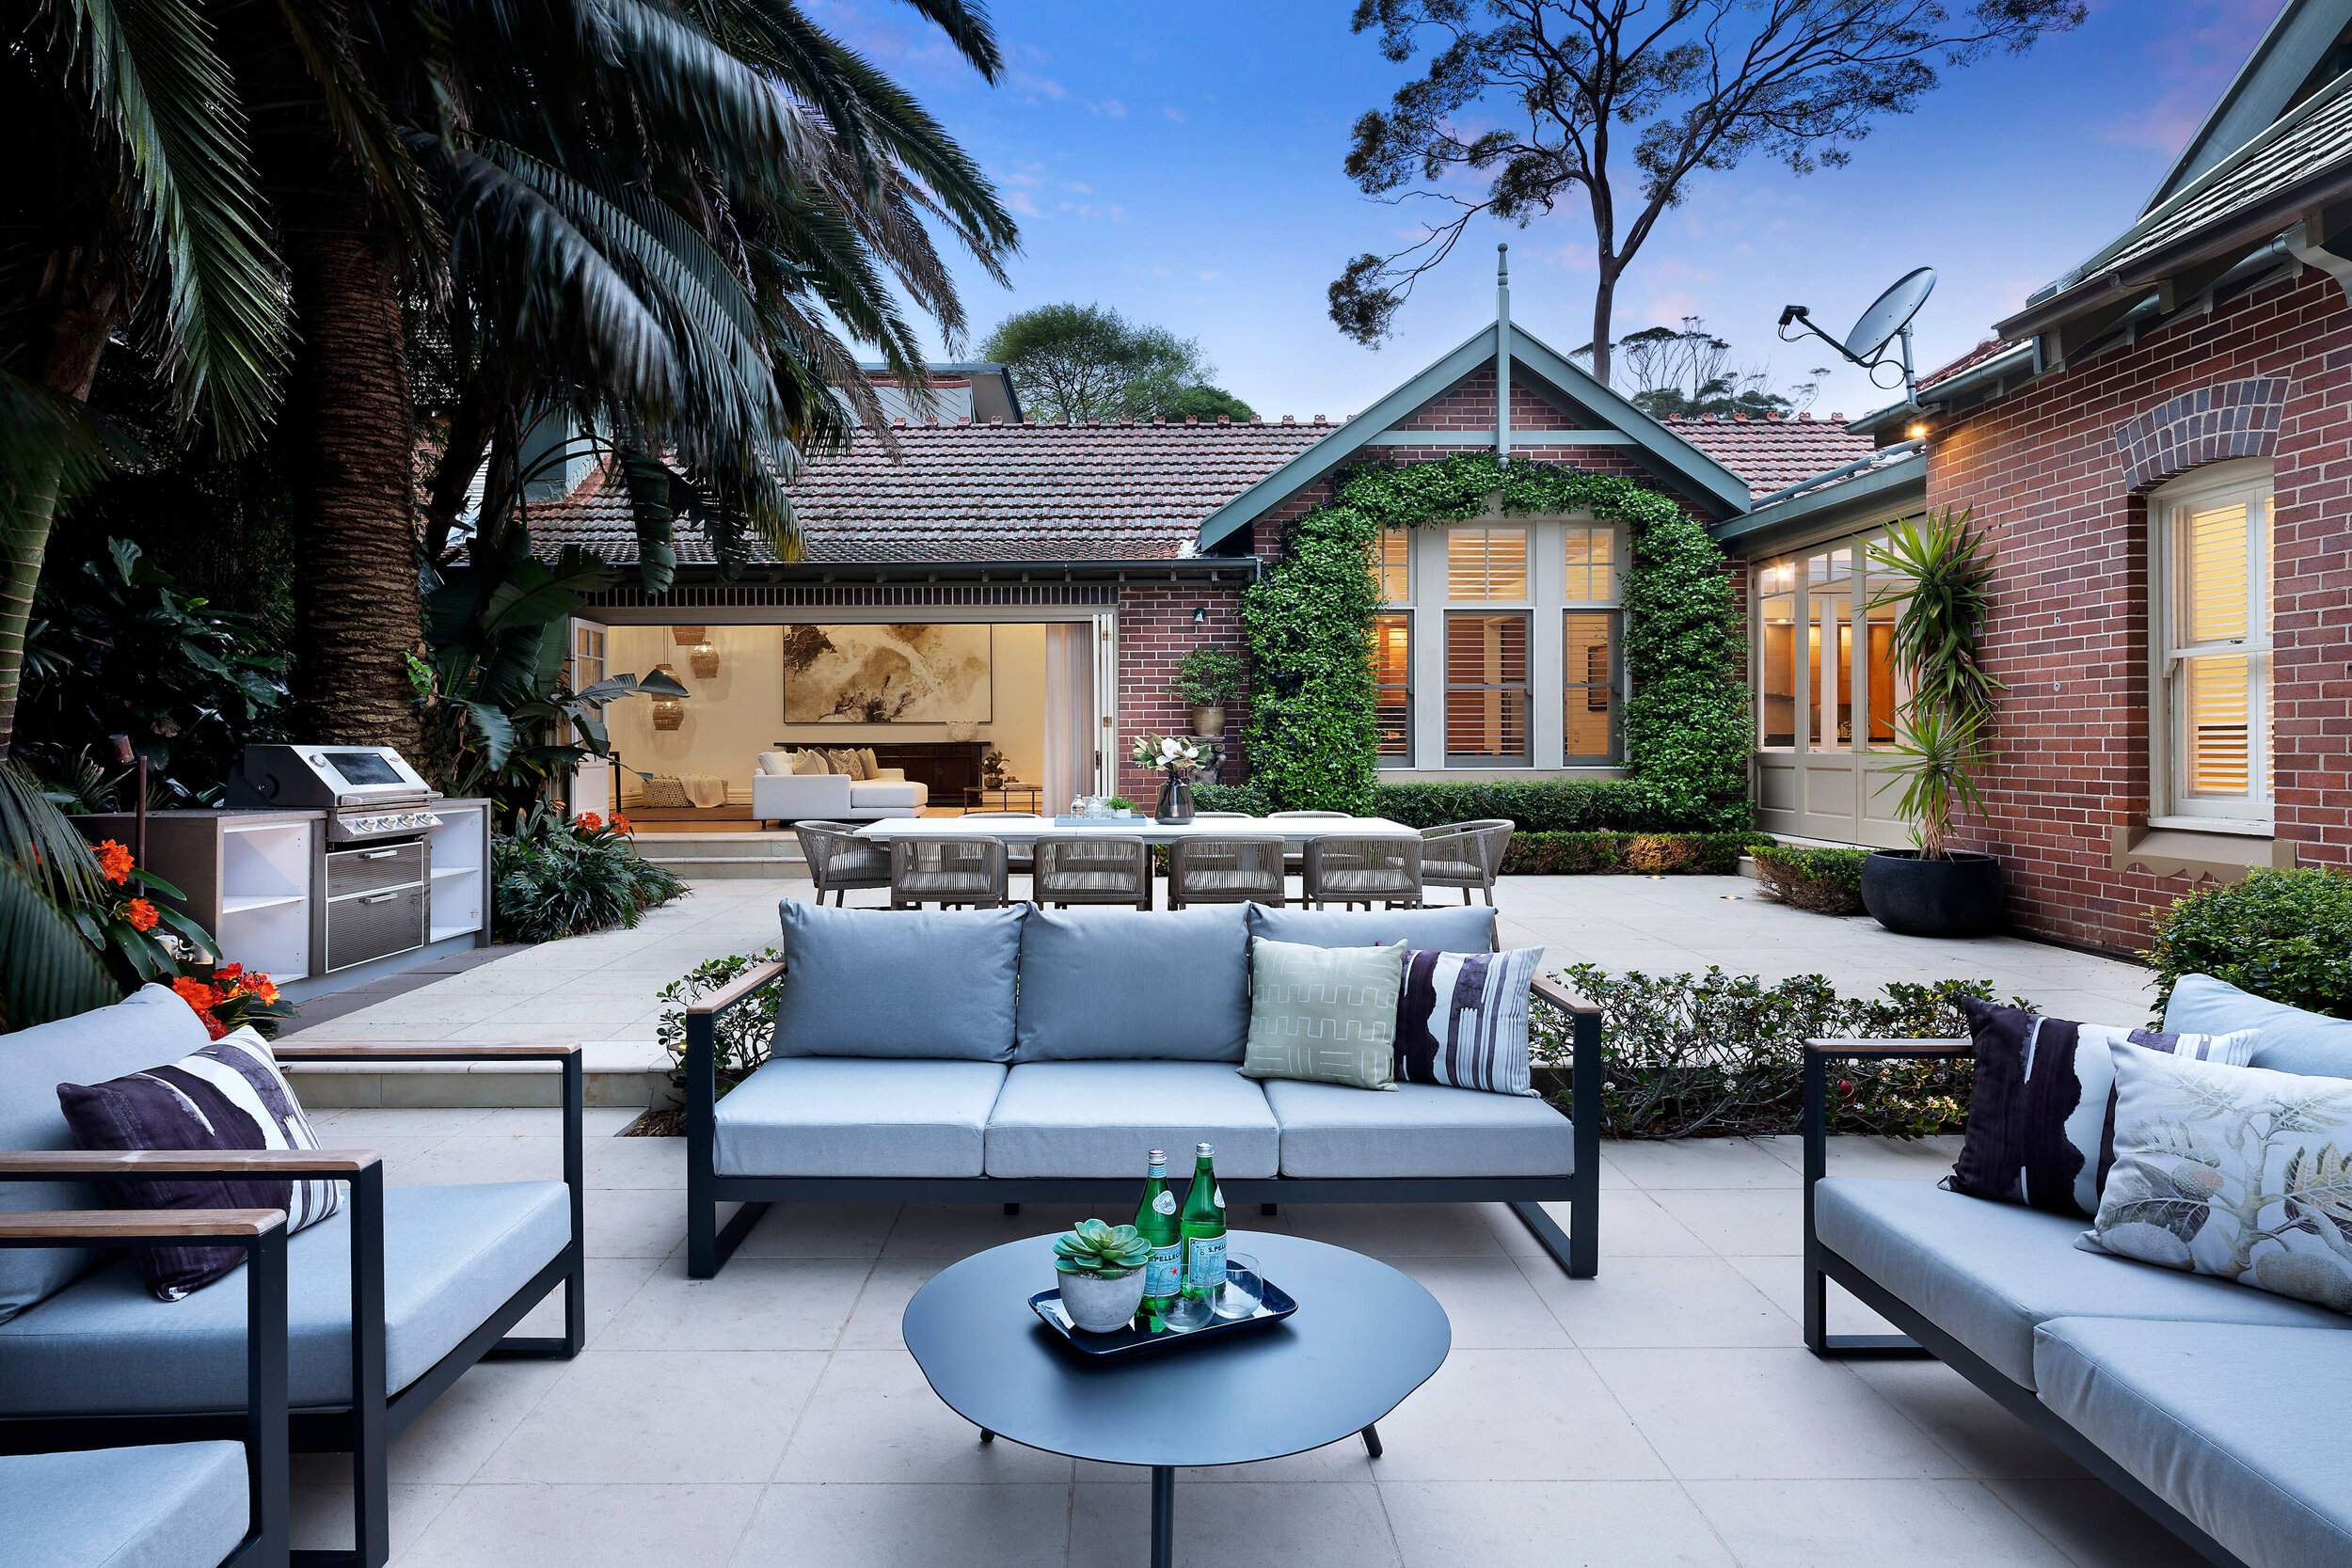 HOT PROPERTY: This Mosman home received more than 60 enquiries in just 24 hours, says Michael Coombs.